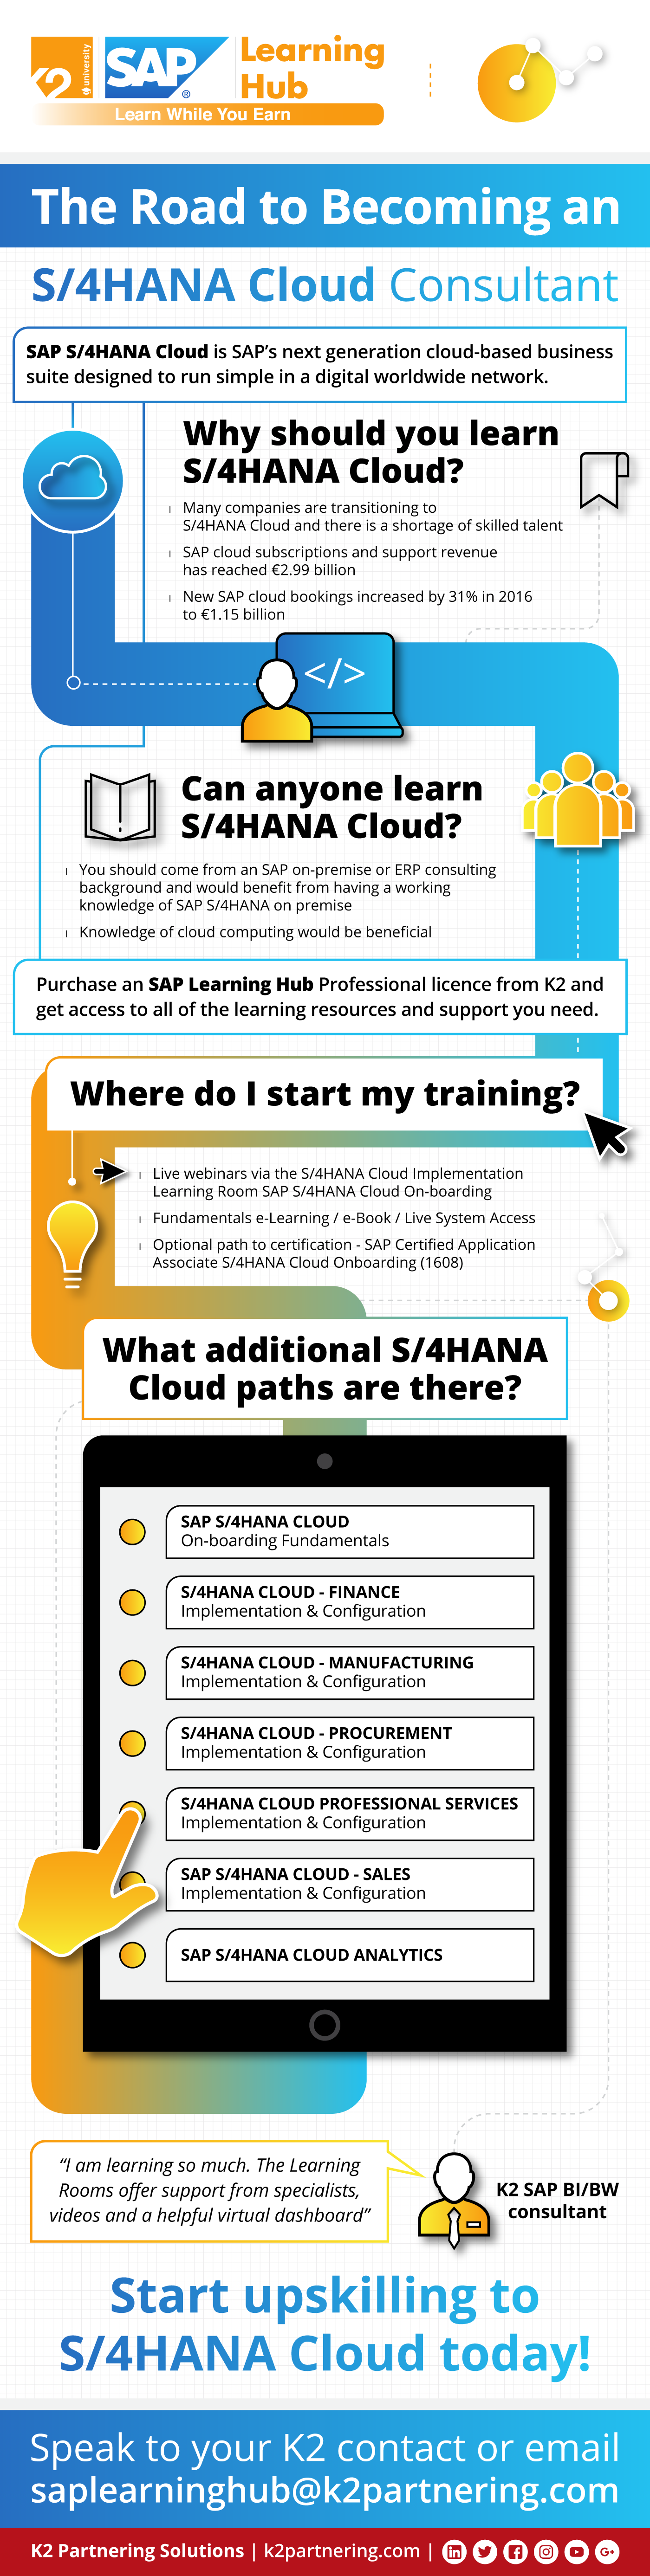 Train to become an S/4HANA Cloud Consultant